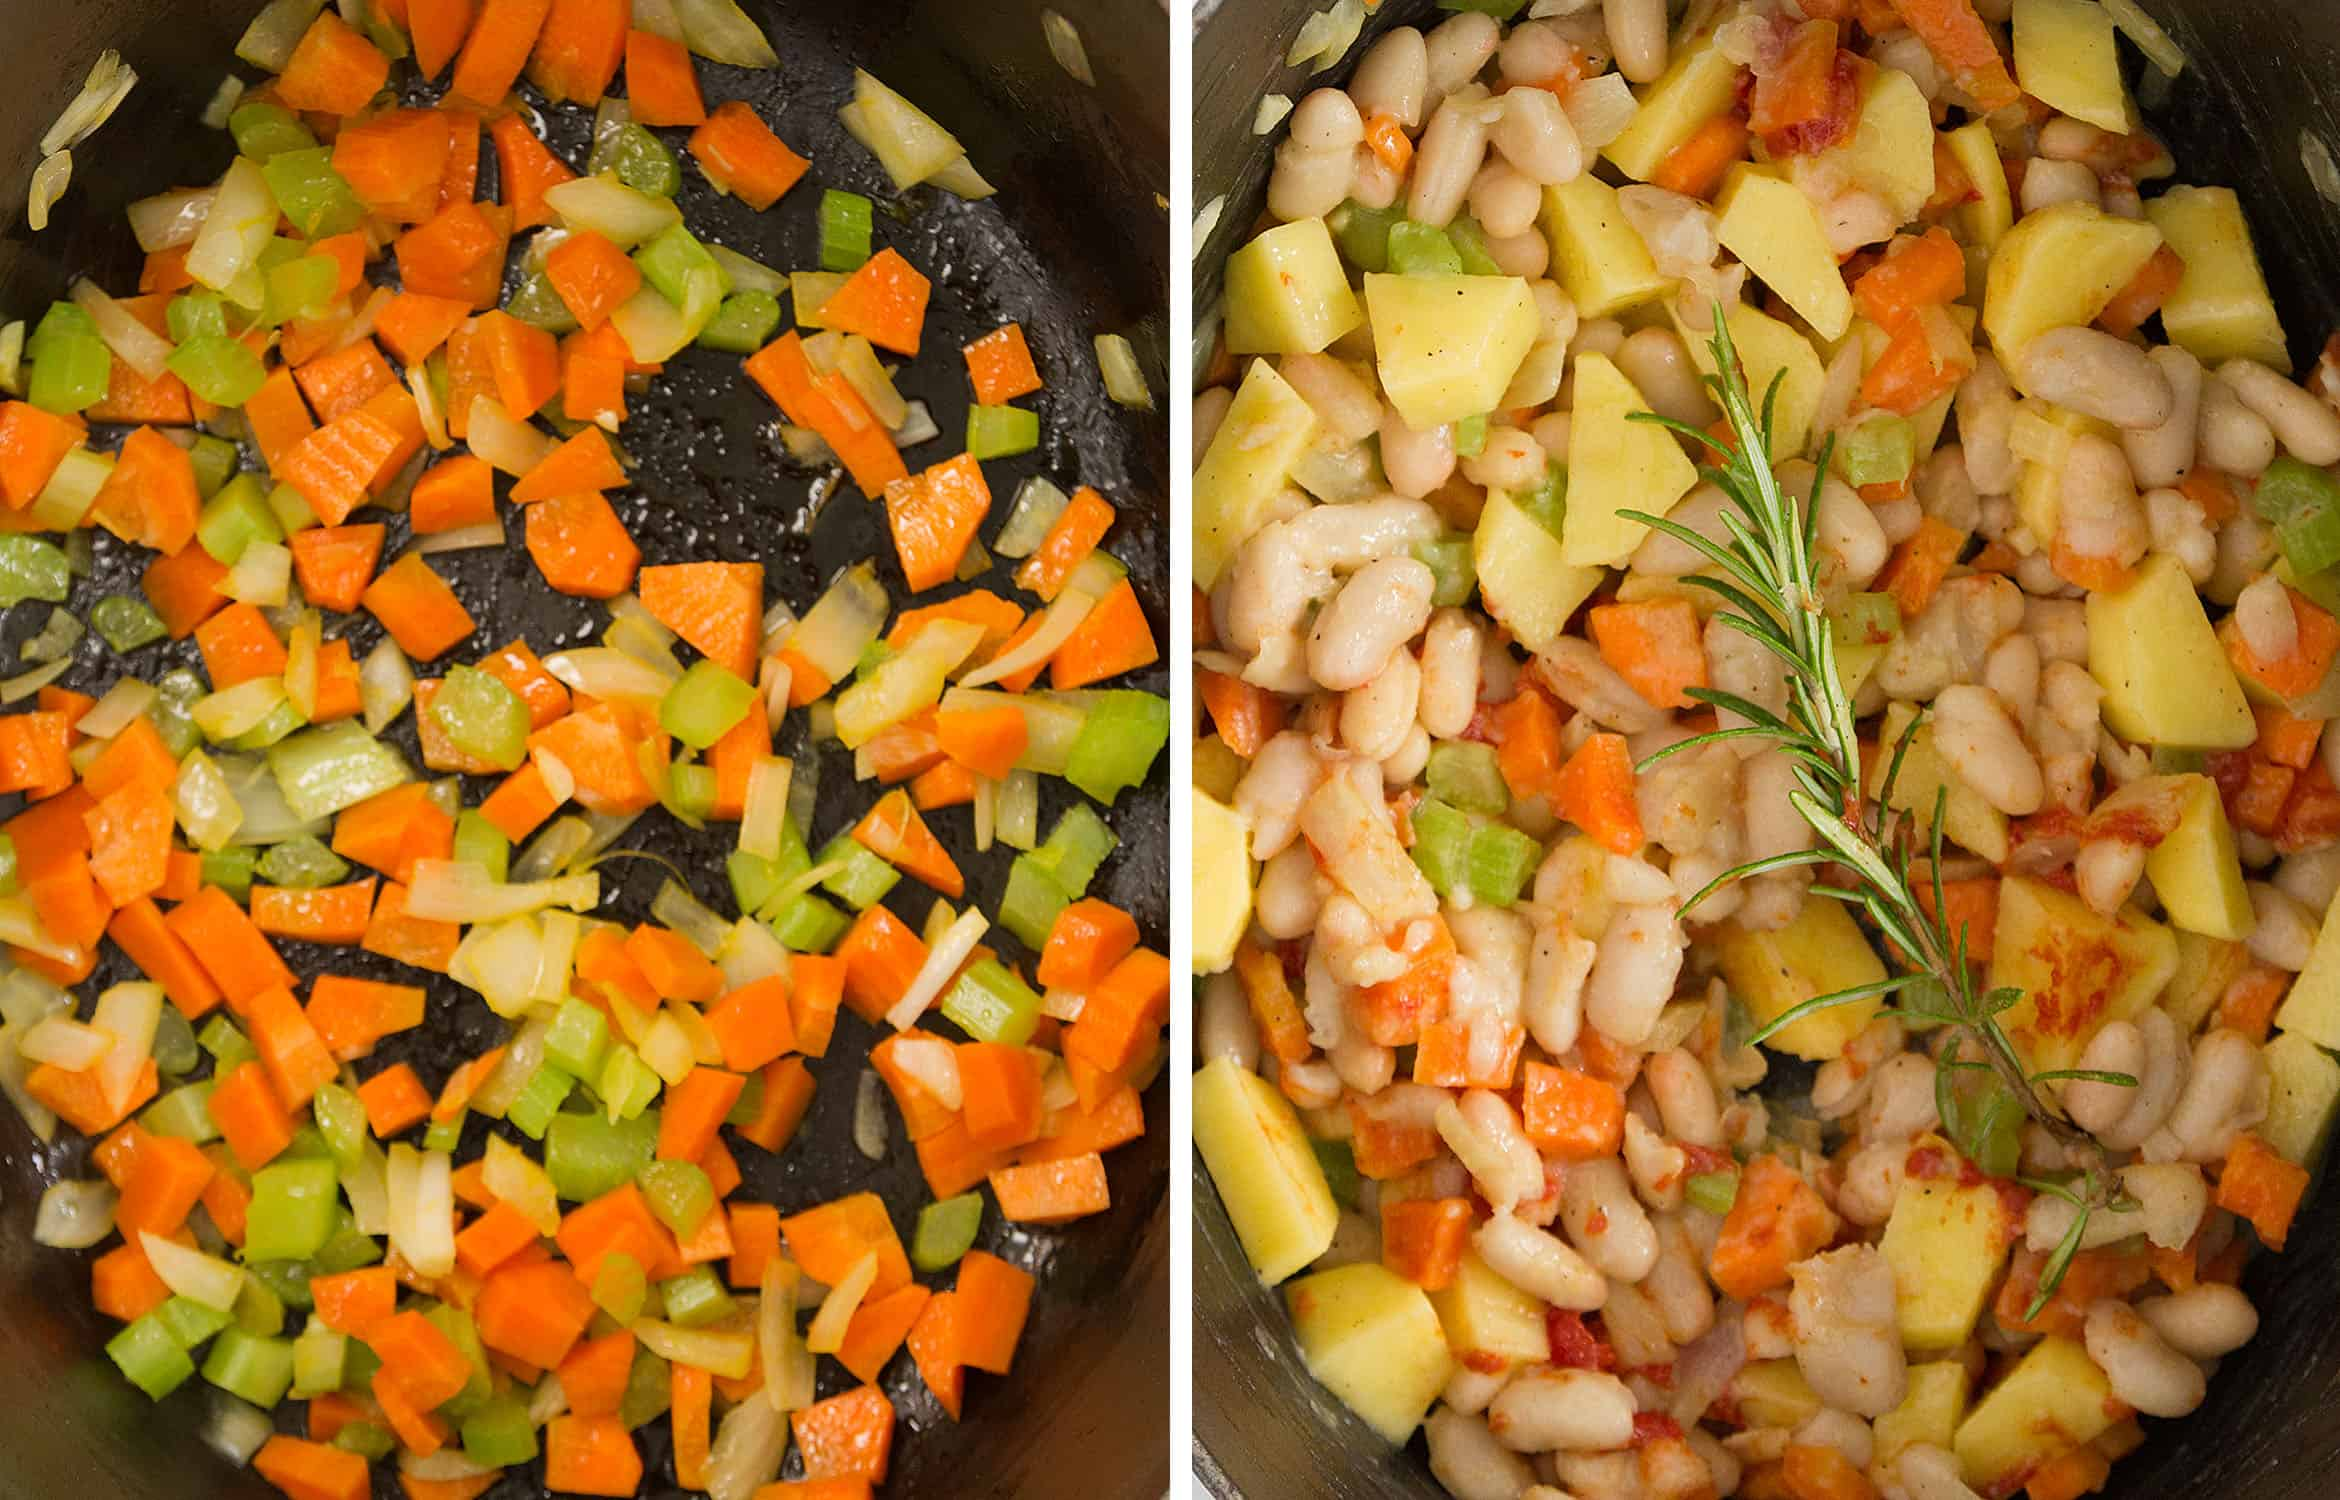 Diced vegetables, beans and a sprig of rosemary in a black cast iron casserole.